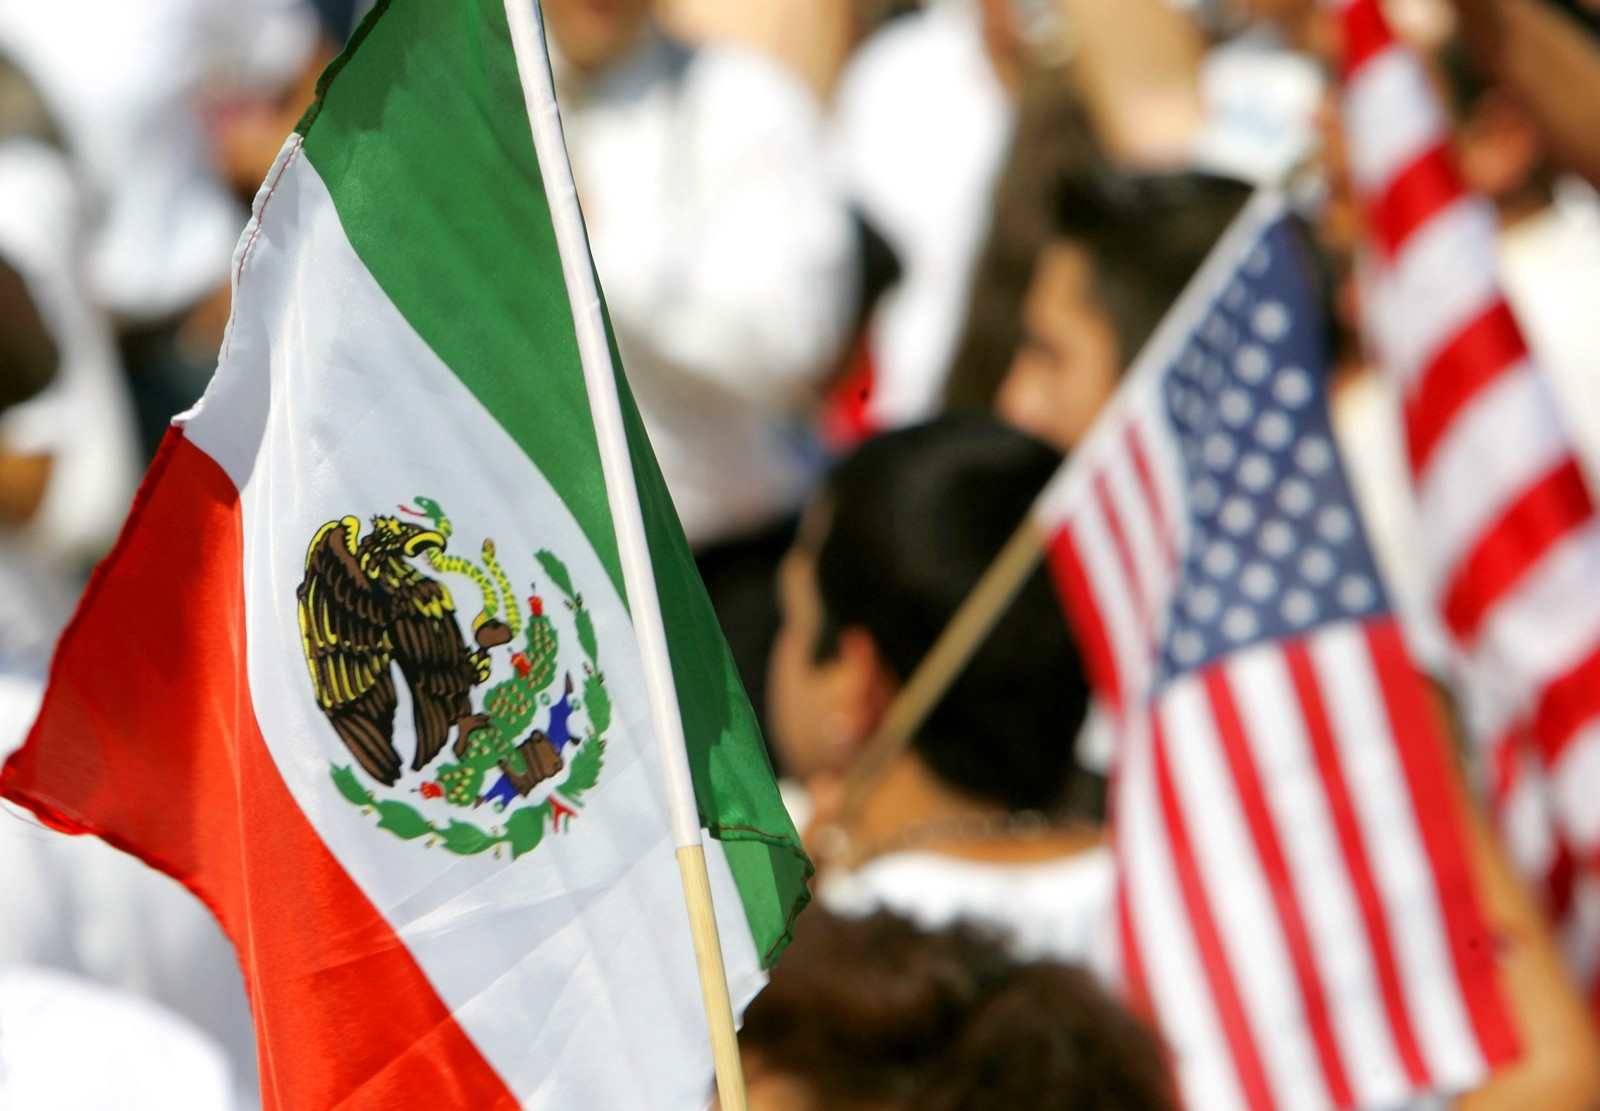 Mexico Vs America Whos View Over The Fight For Territory Is Right